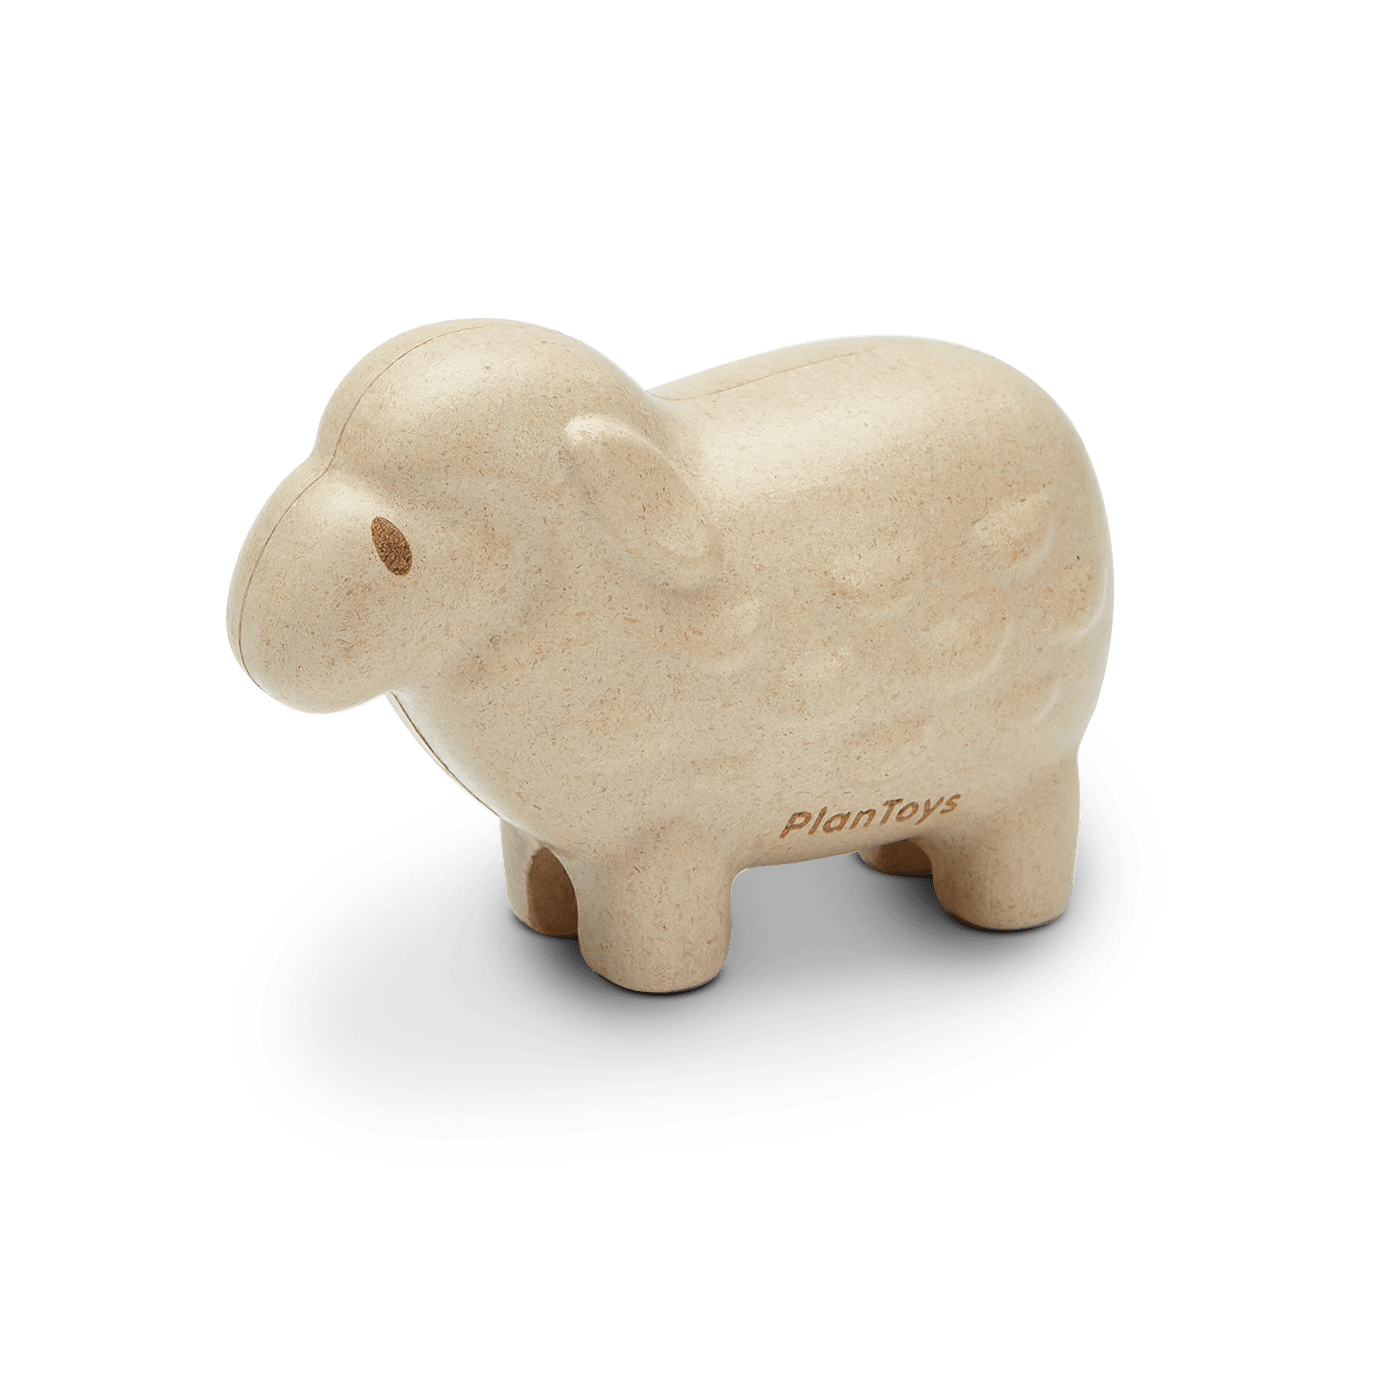 6142_PlanToys_SHEEP_Pretend_Play_Imagination_Social_Language_and_Communications_Fine_Motor_12m_Wooden_toys_Education_toys_Safety_Toys_Non-toxic_0.png